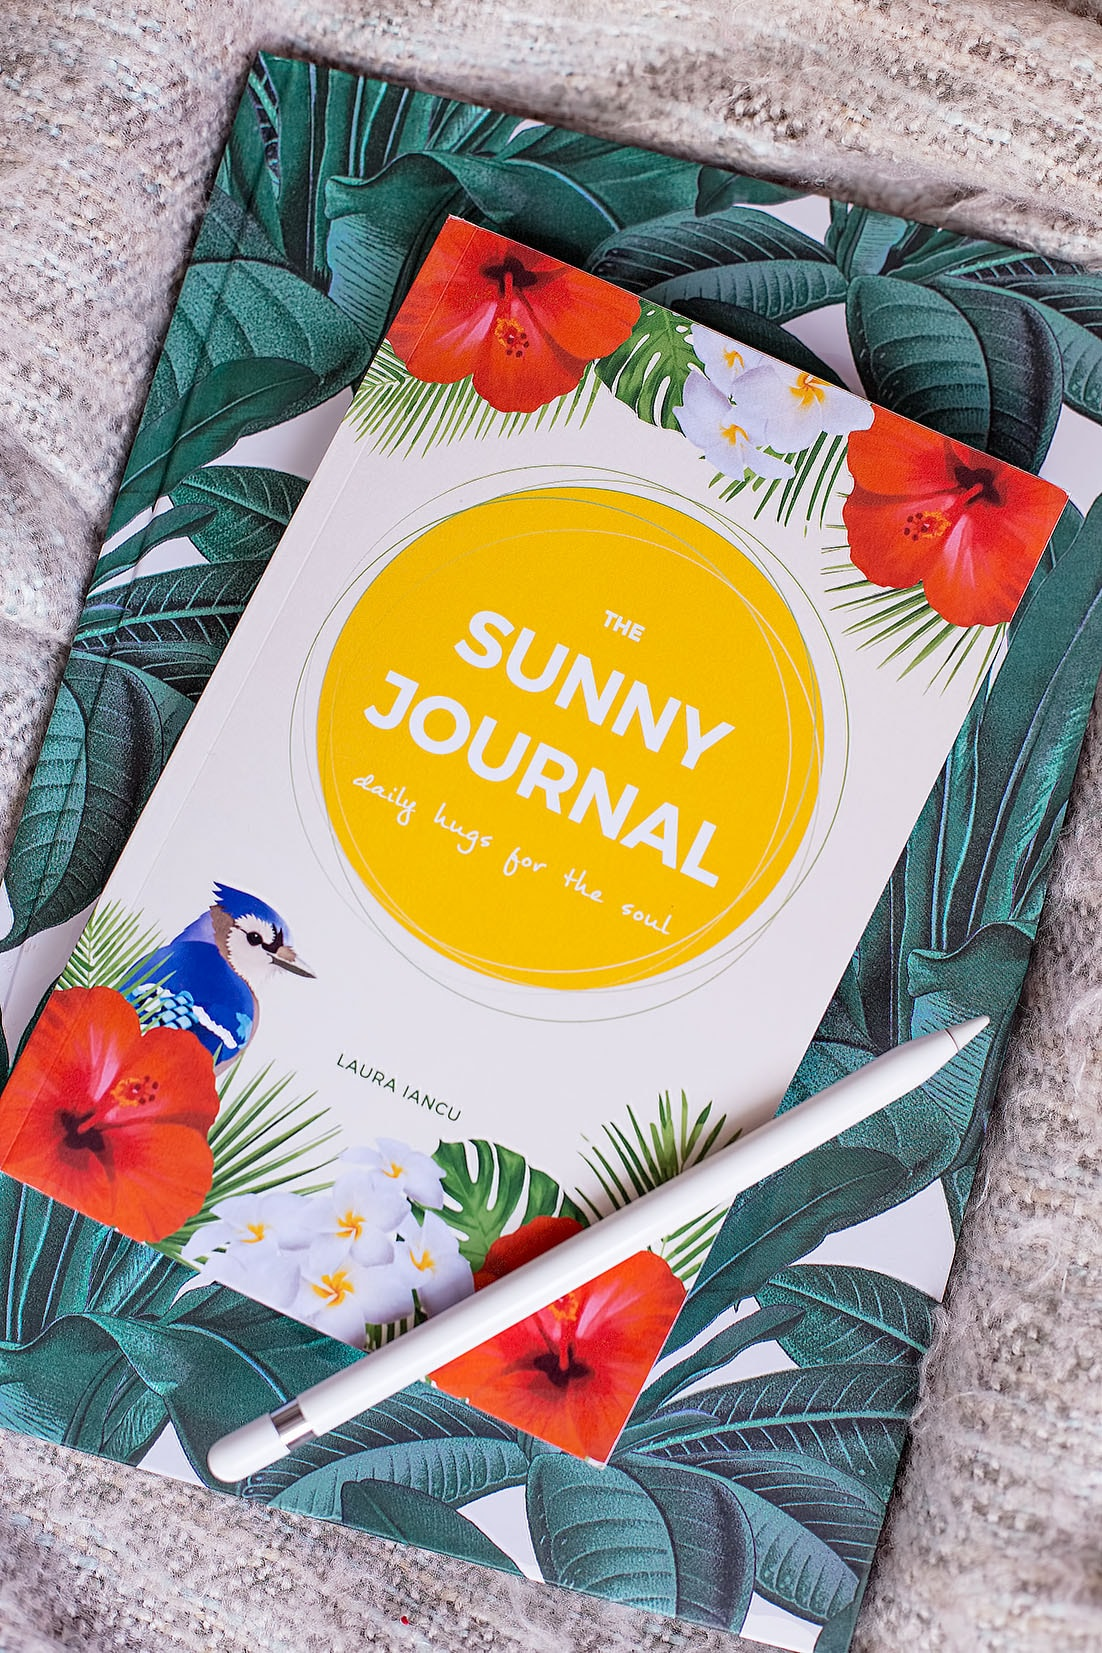 The Sunny Journal is a powerful tool for positive change. It features morning prompts to consciously set your intentions for the day and evening gratitude prompts that will help you become a happier person. Buy now!